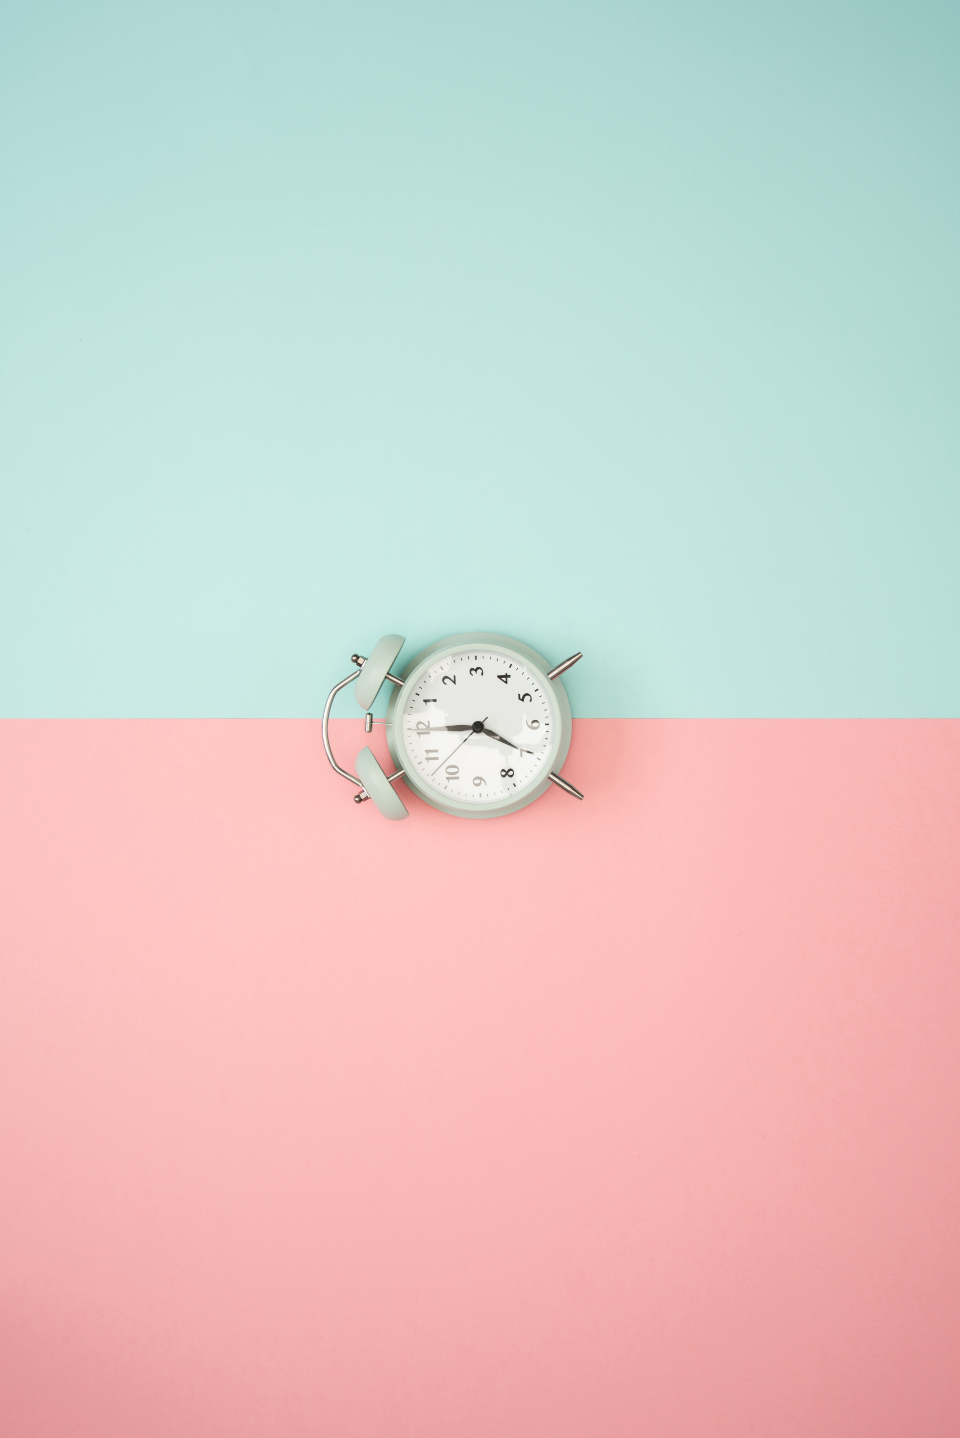 clock pastel background blue